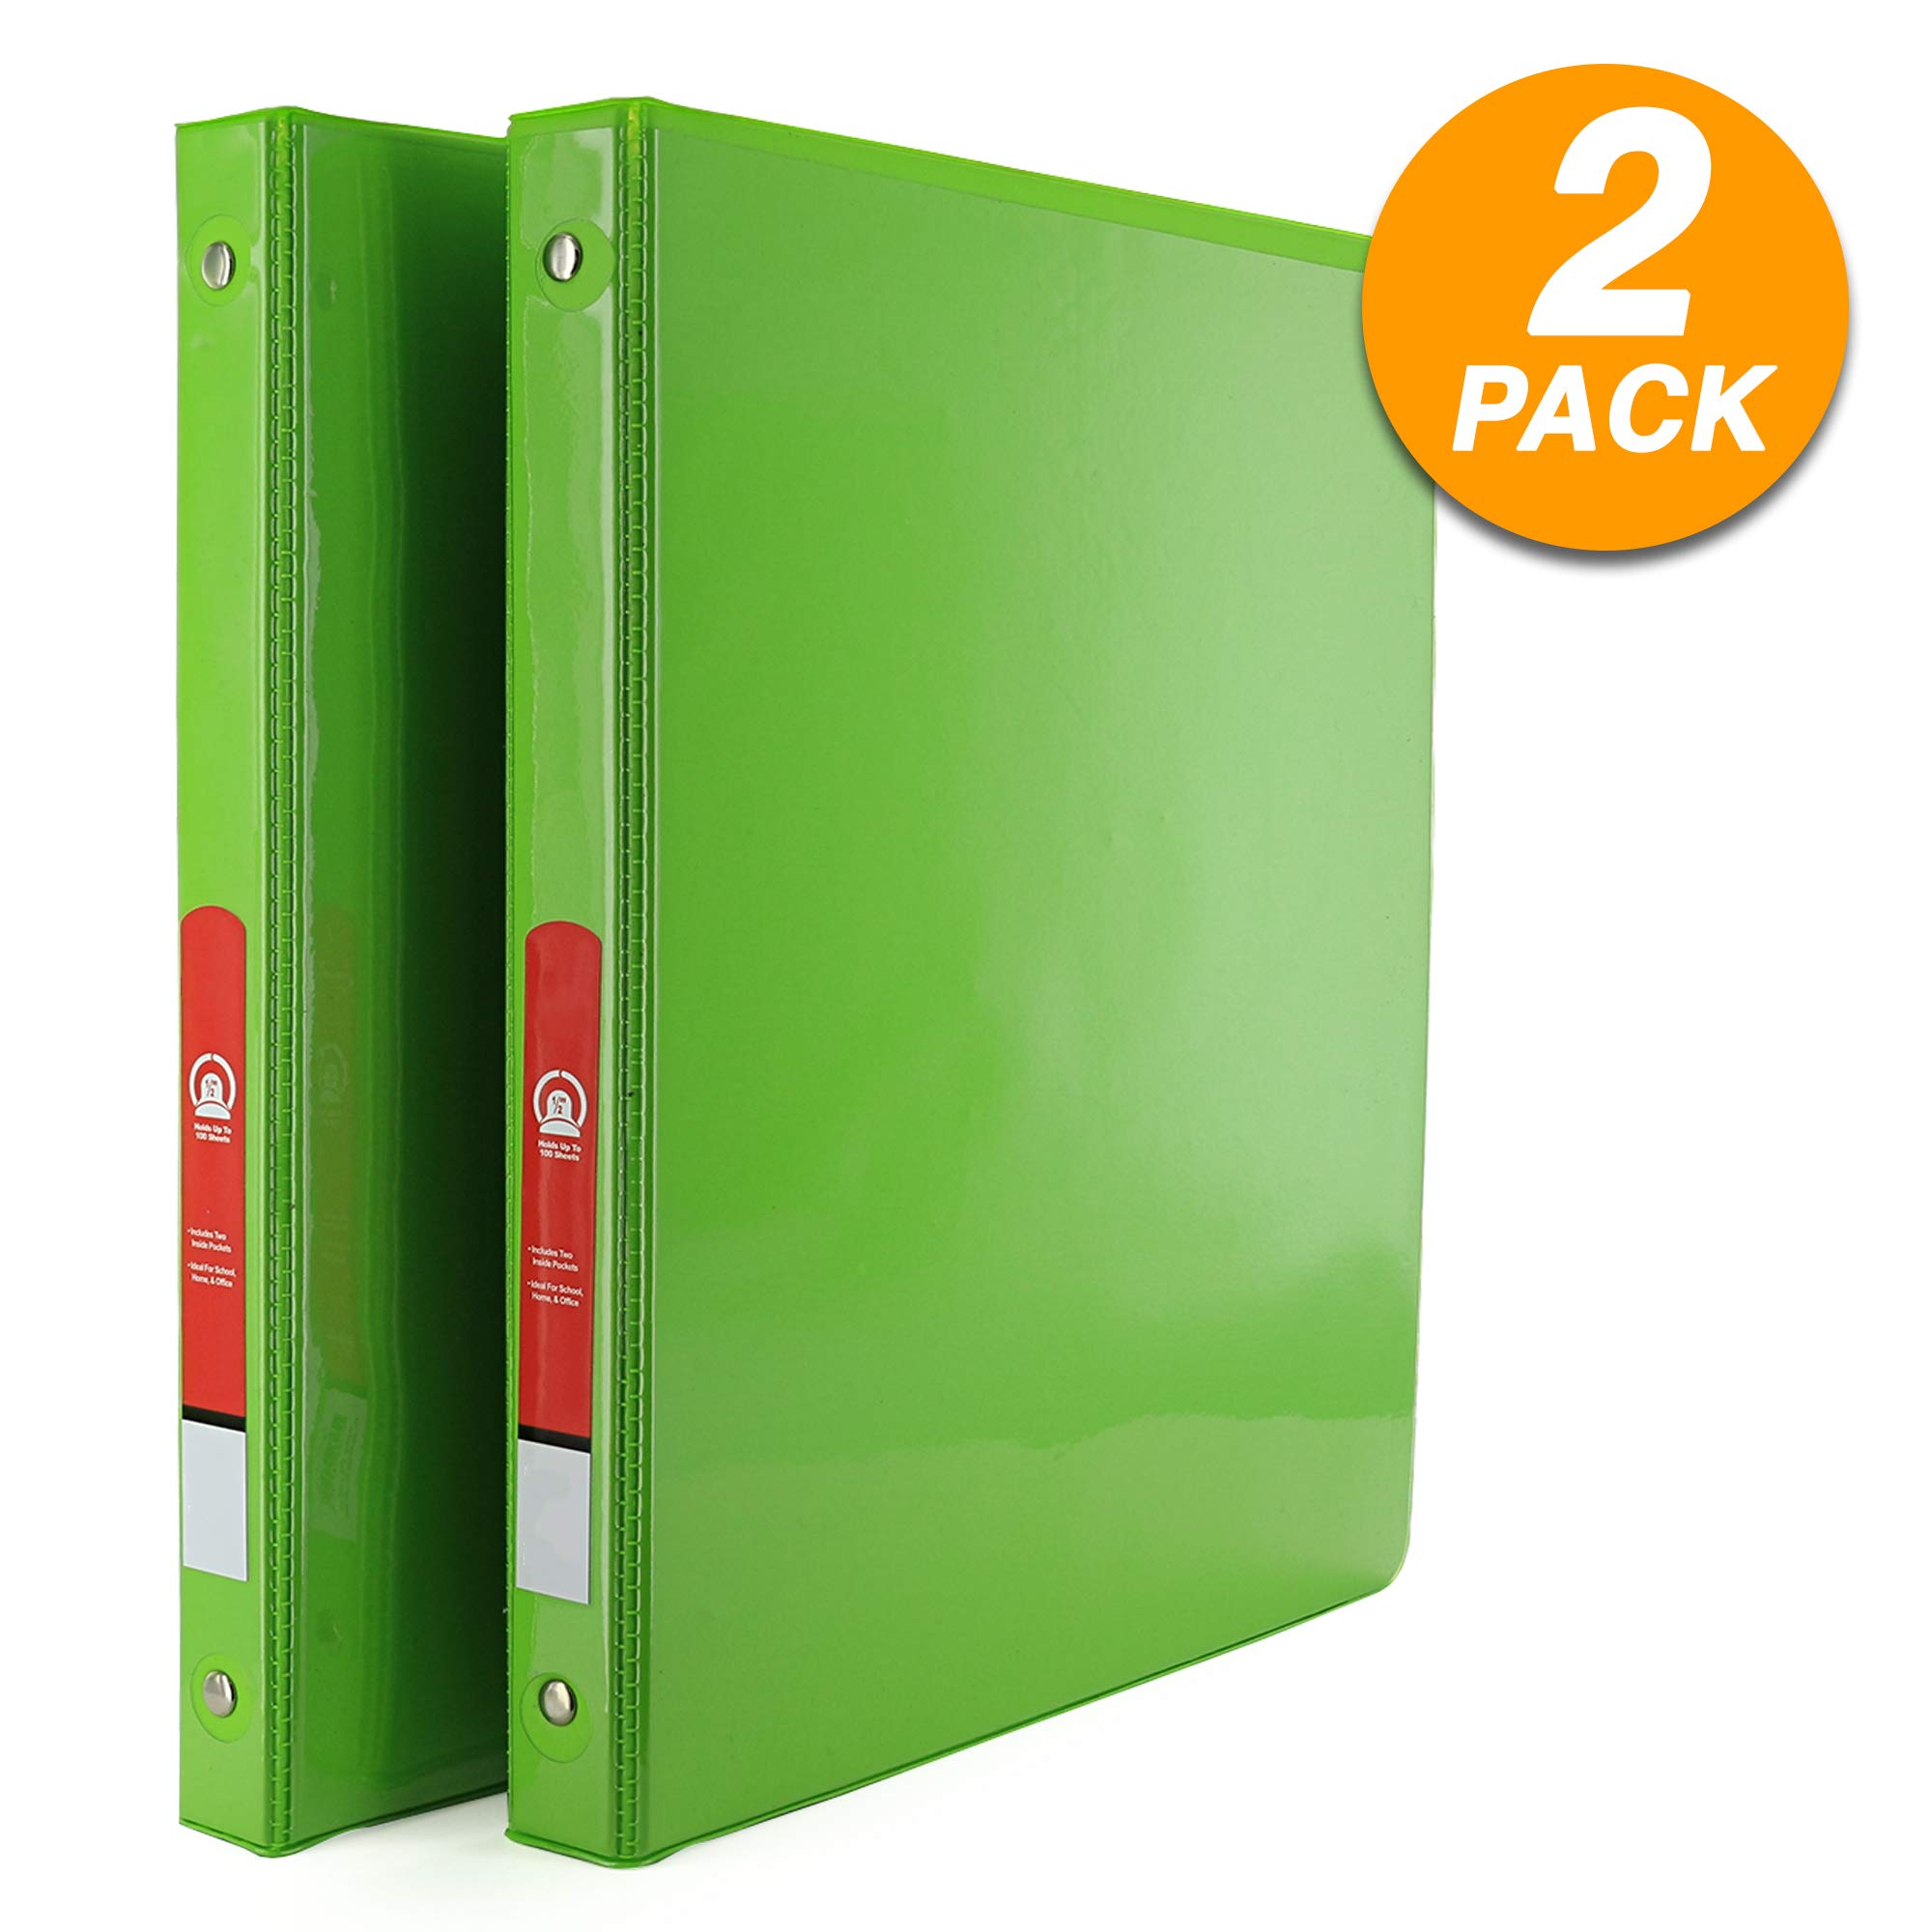 Emraw Super Great 1/2'' 3-Ring View Binder with 2-Pockets - Available in Lime Green - Great for School, Home, Office (2-Pack) by Emraw